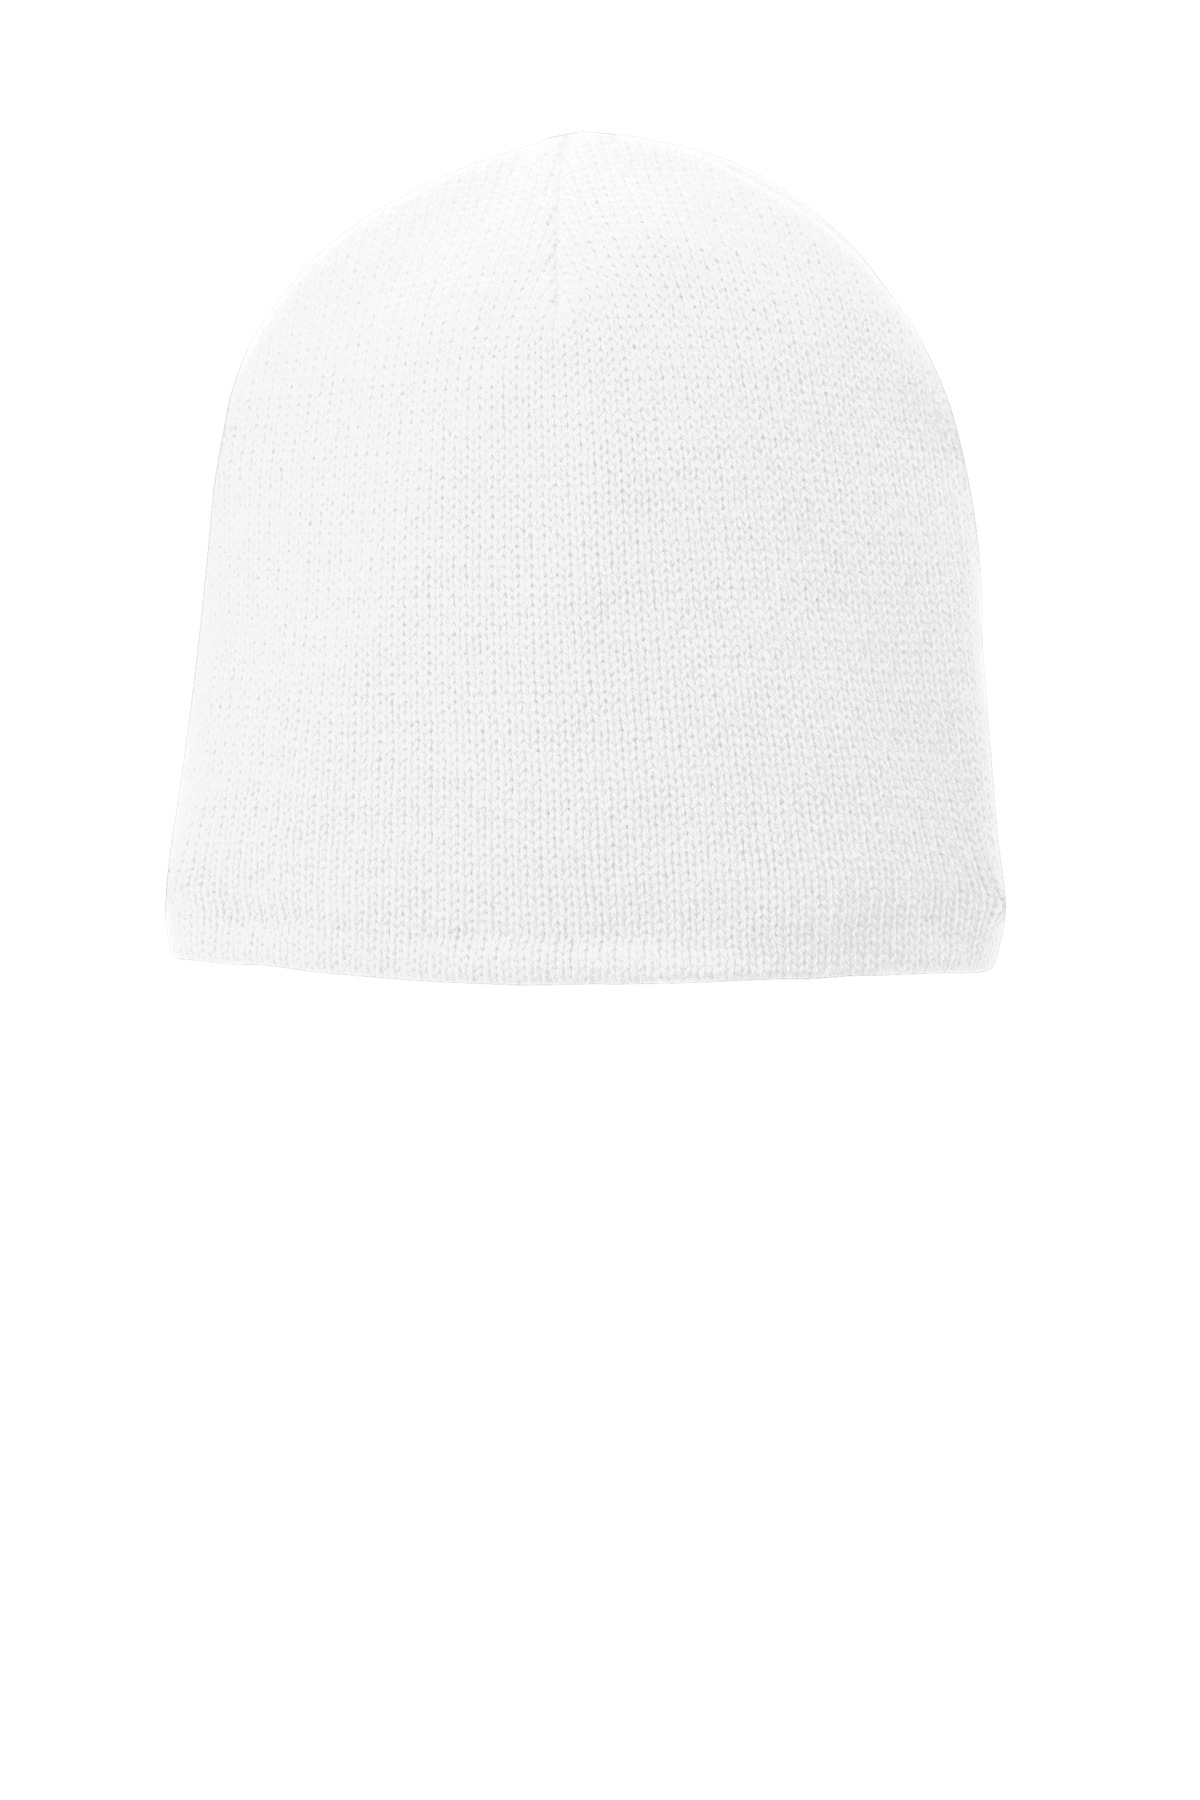 Port & Company ®  Fleece-Lined Beanie Cap. CP91L - White